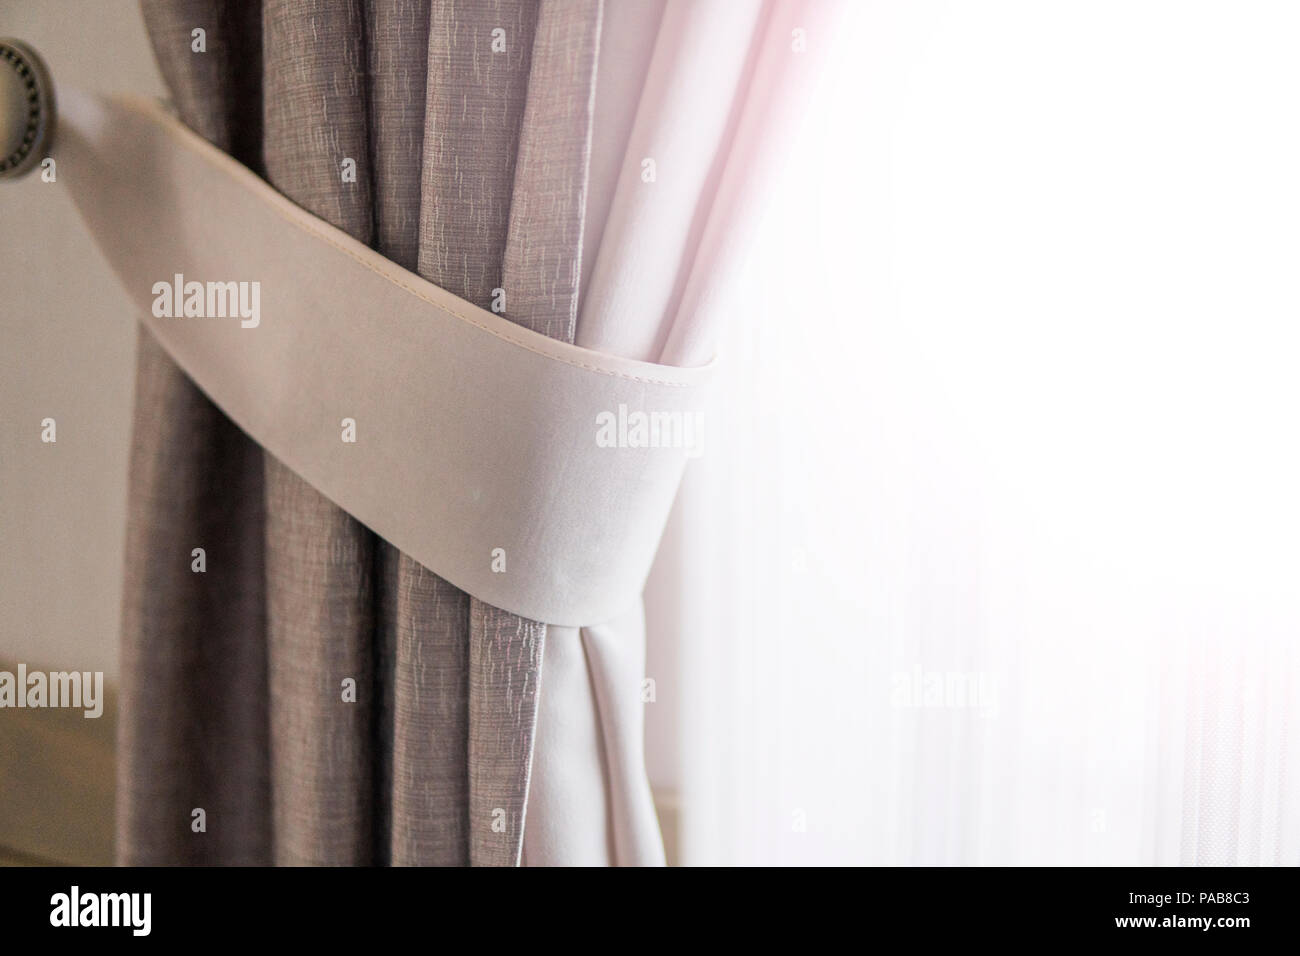 Curtain against window with a warm sunlight. - Stock Image